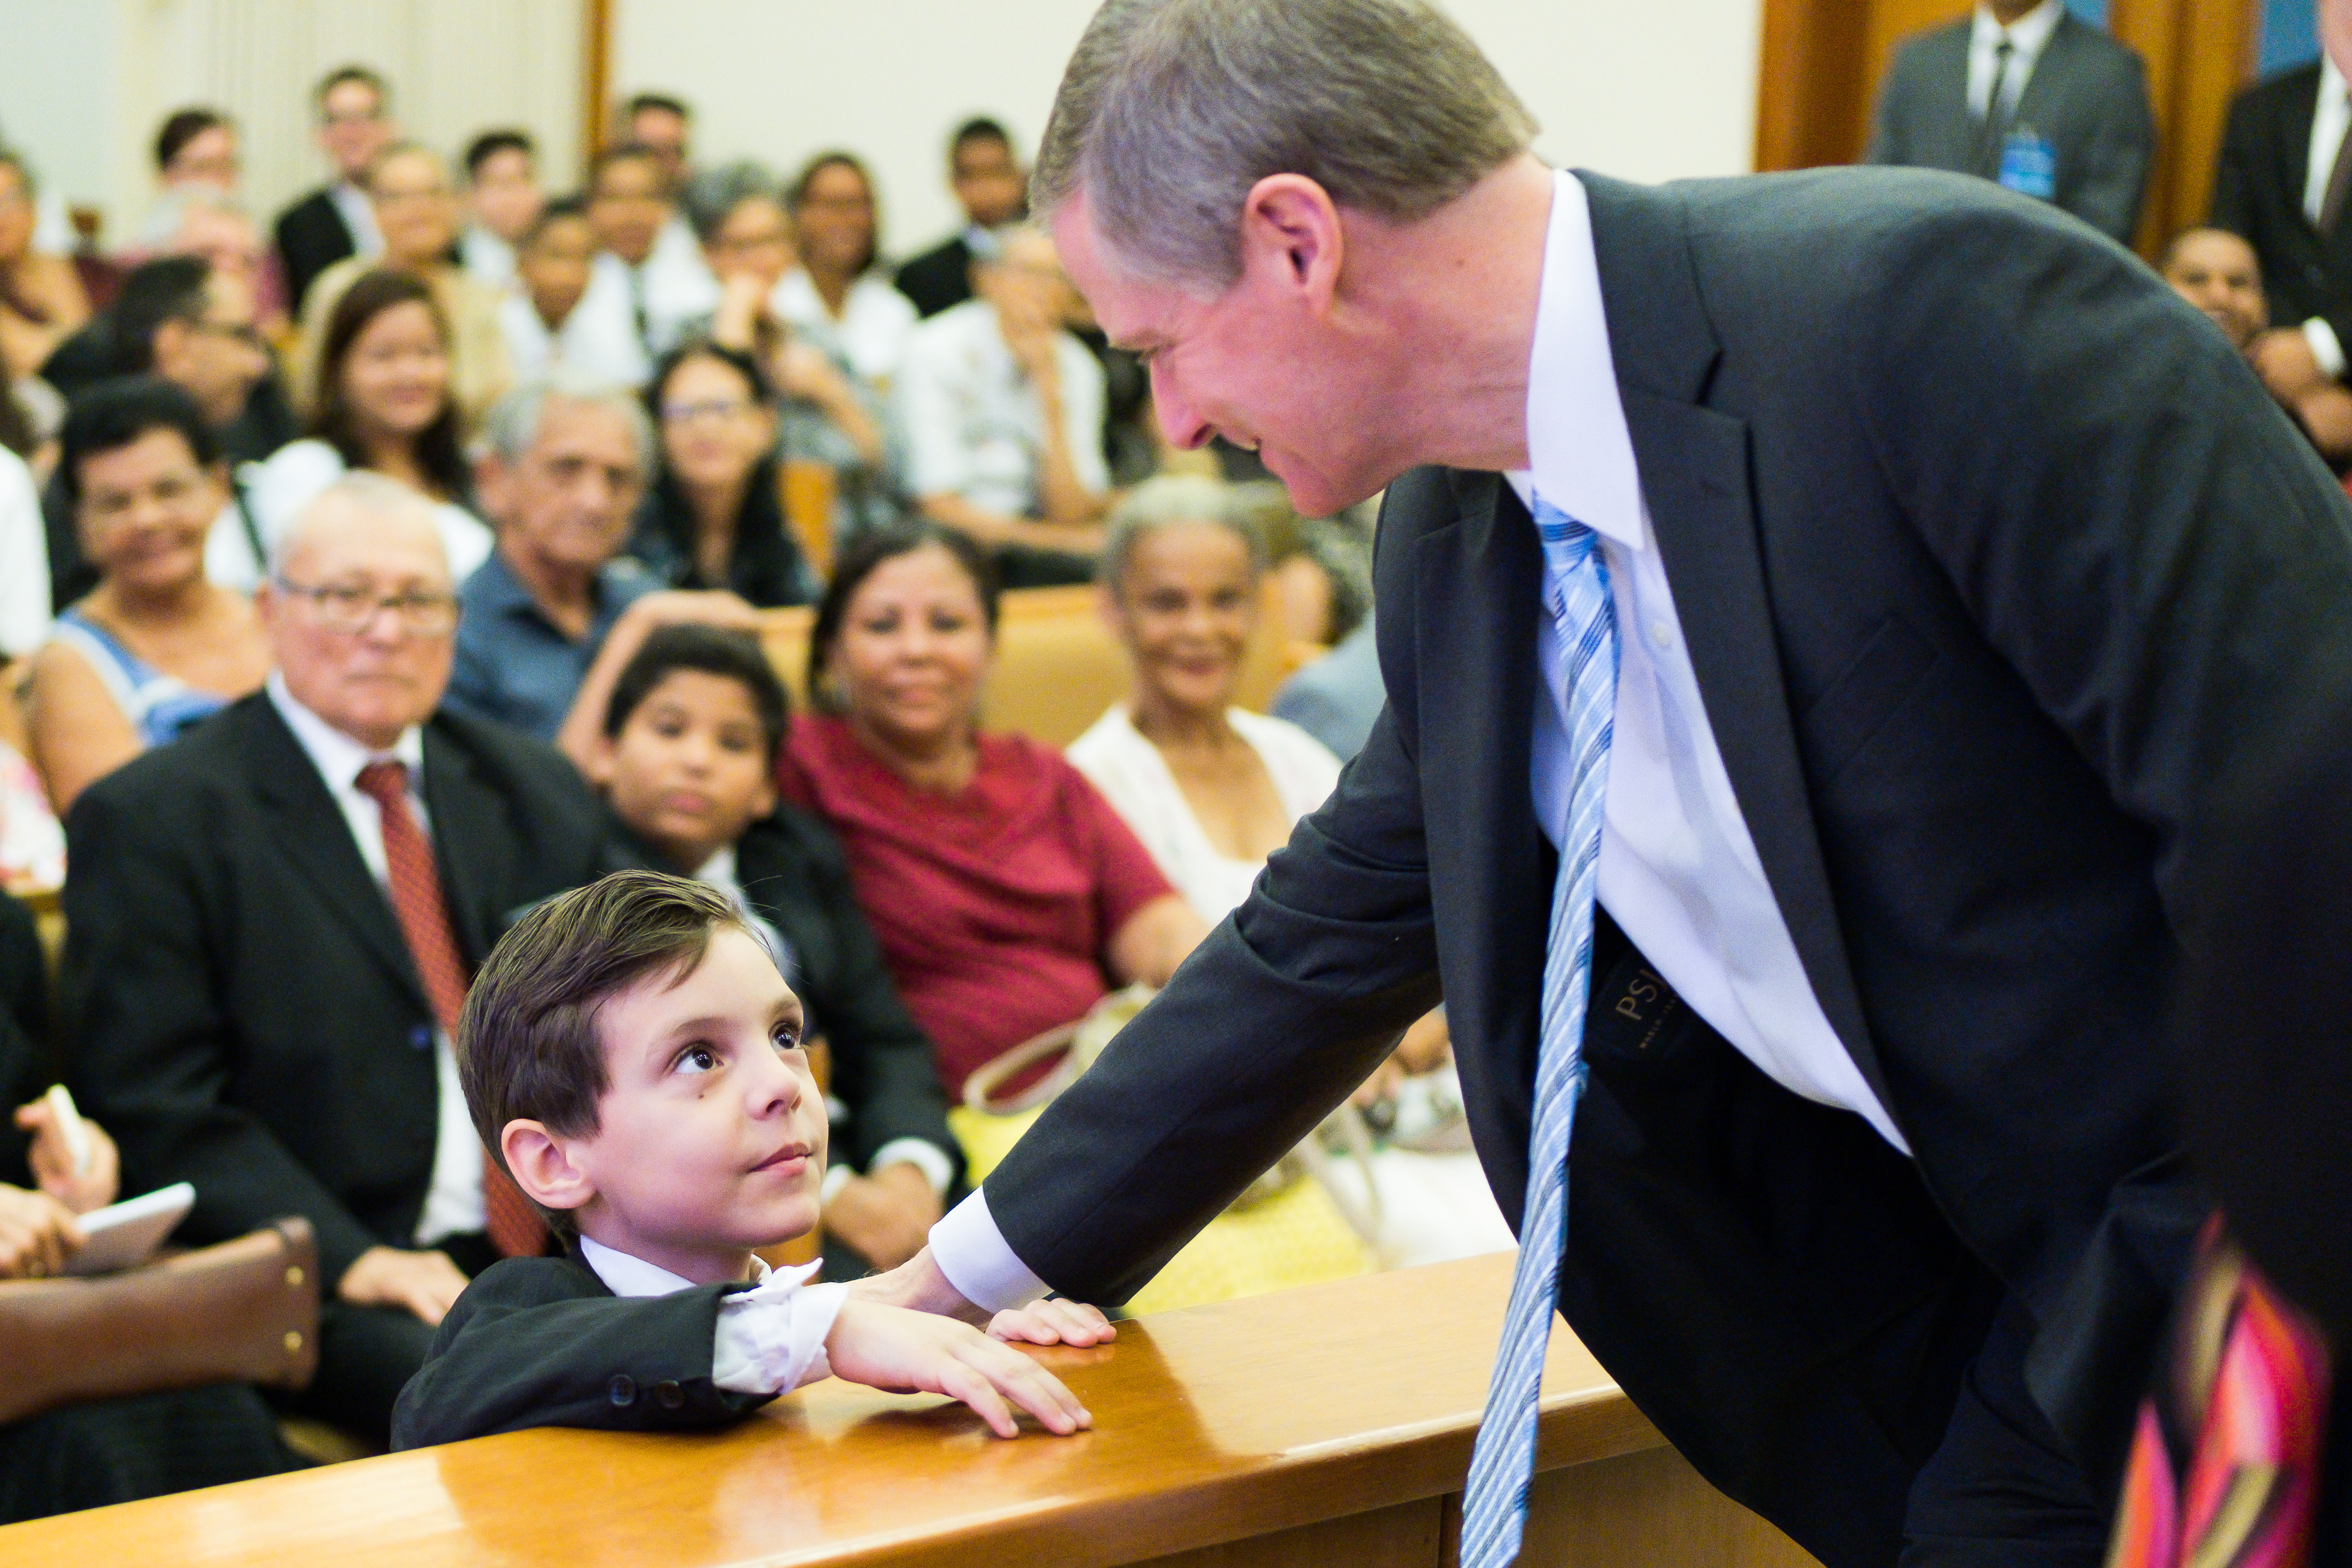 """Elder Bednar greets a child and tells him to """"be a good boy"""" after a stake meeting in Recife, Brazil."""